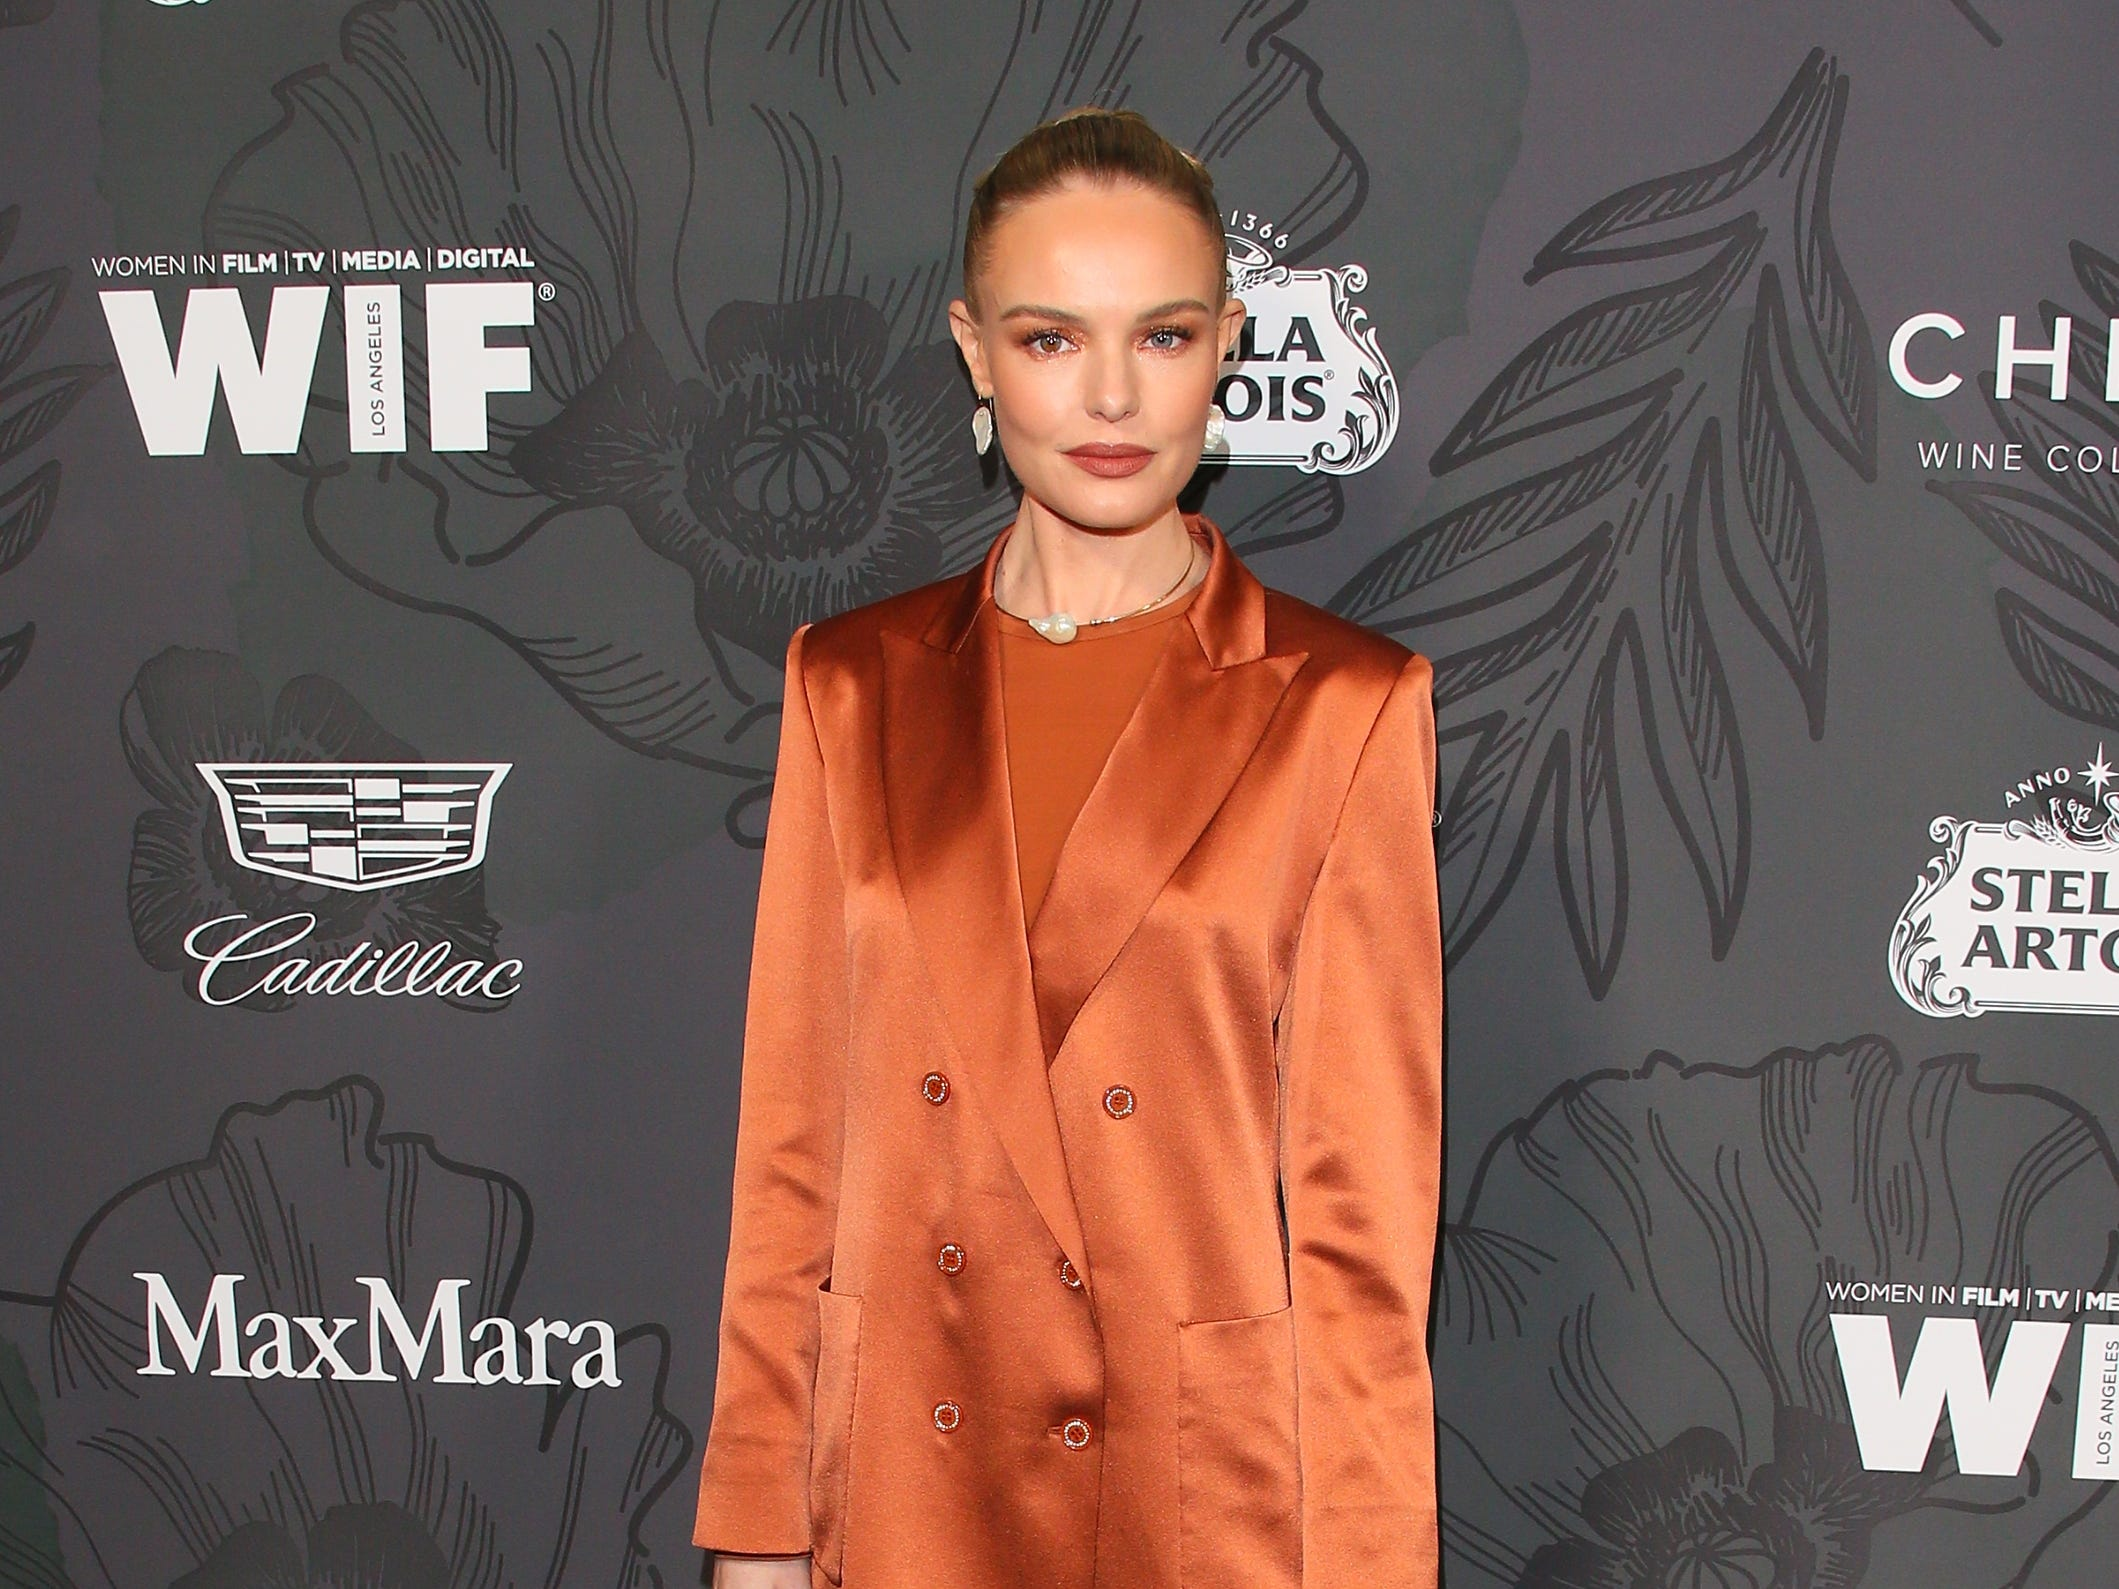 BEVERLY HILLS, CALIFORNIA - FEBRUARY 22: Kate Bosworth attends the 12th Annual Women In Film Oscar Party at Spring Place on February 22, 2019 in Beverly Hills, California. (Photo by JB Lacroix/WireImage) ORG XMIT: 775298179 ORIG FILE ID: 1126776057